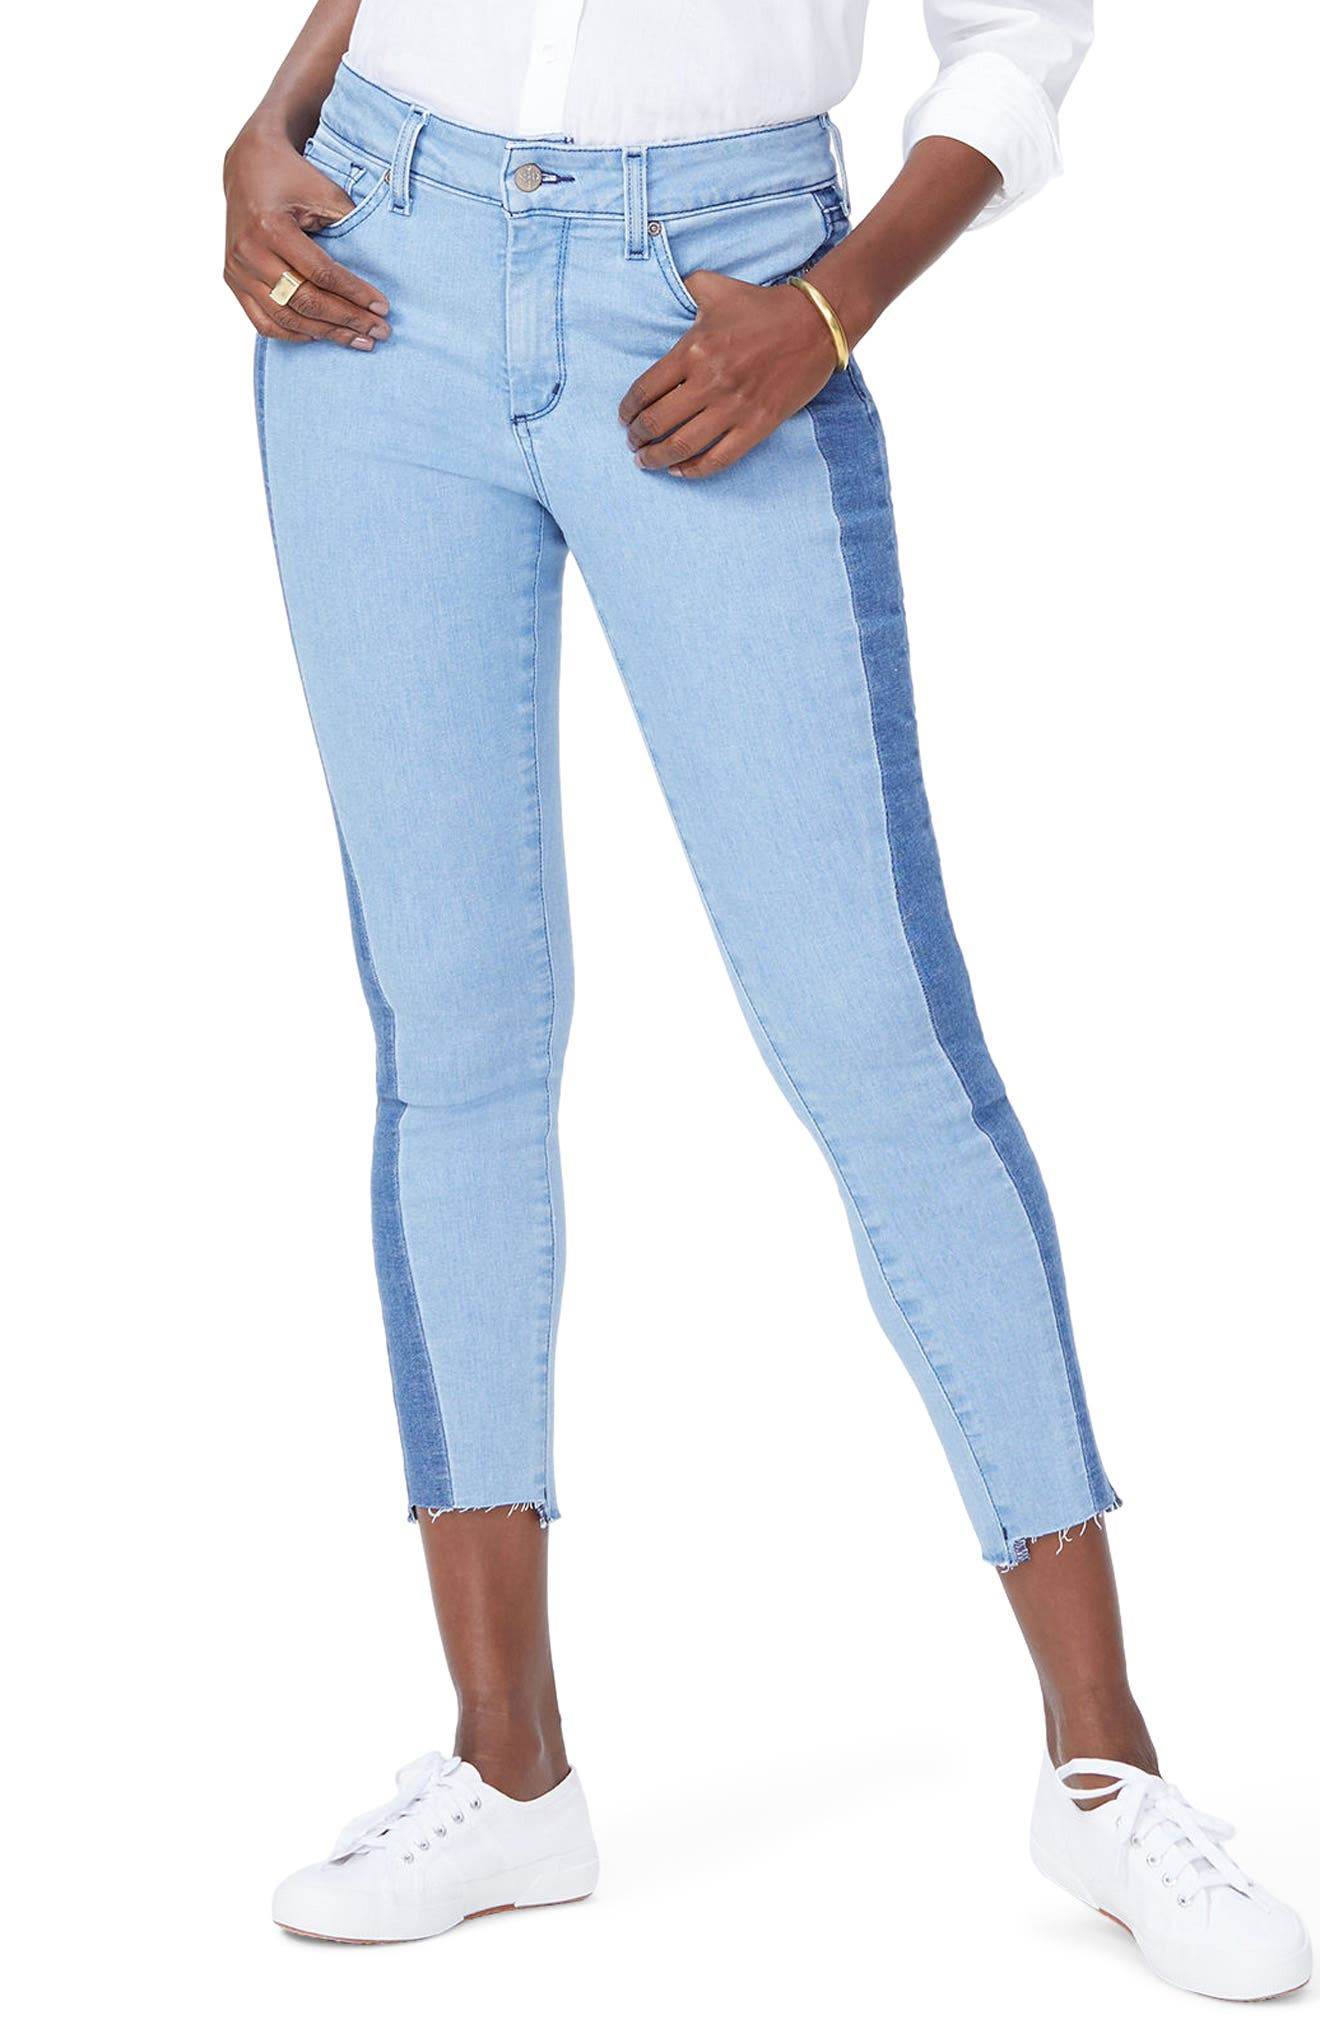 Ami Stretch Ankle Skinny Contrast Step Hem Jeans,                             Main thumbnail 1, color,                             462